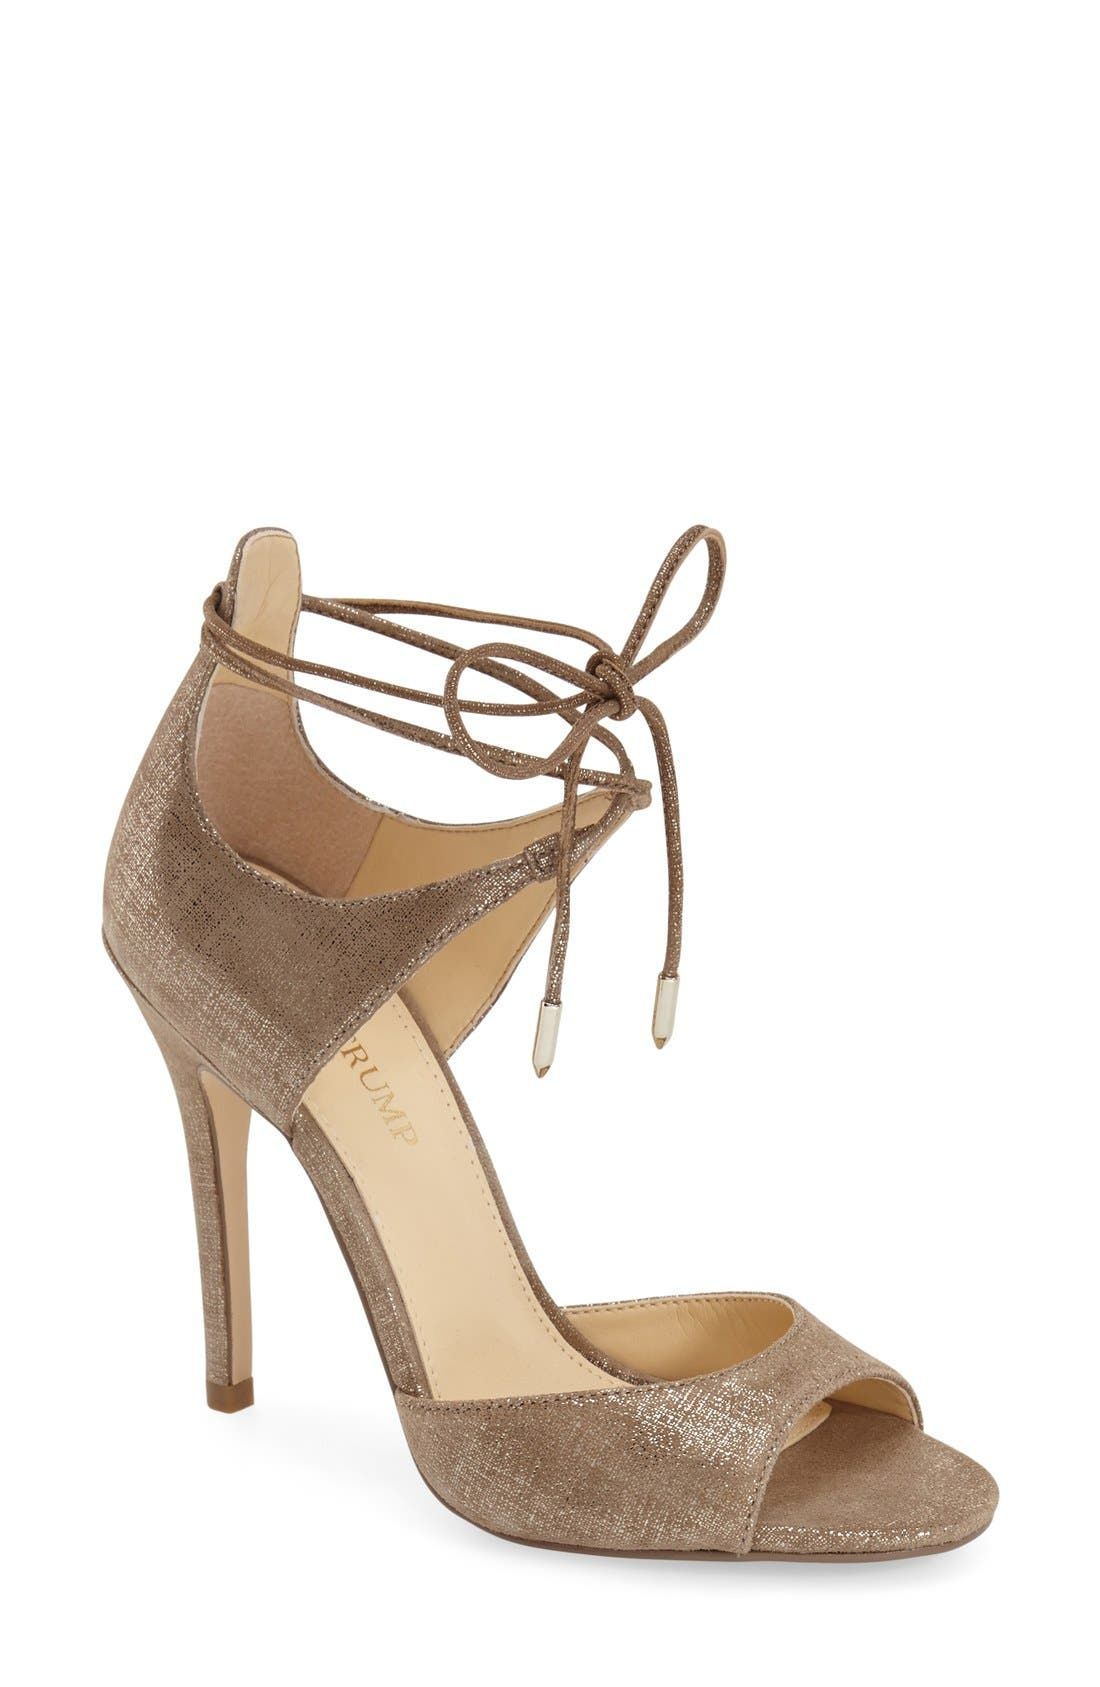 'Holidae' d'Orsay Sandal,                         Main,                         color, Gold Linen Suede